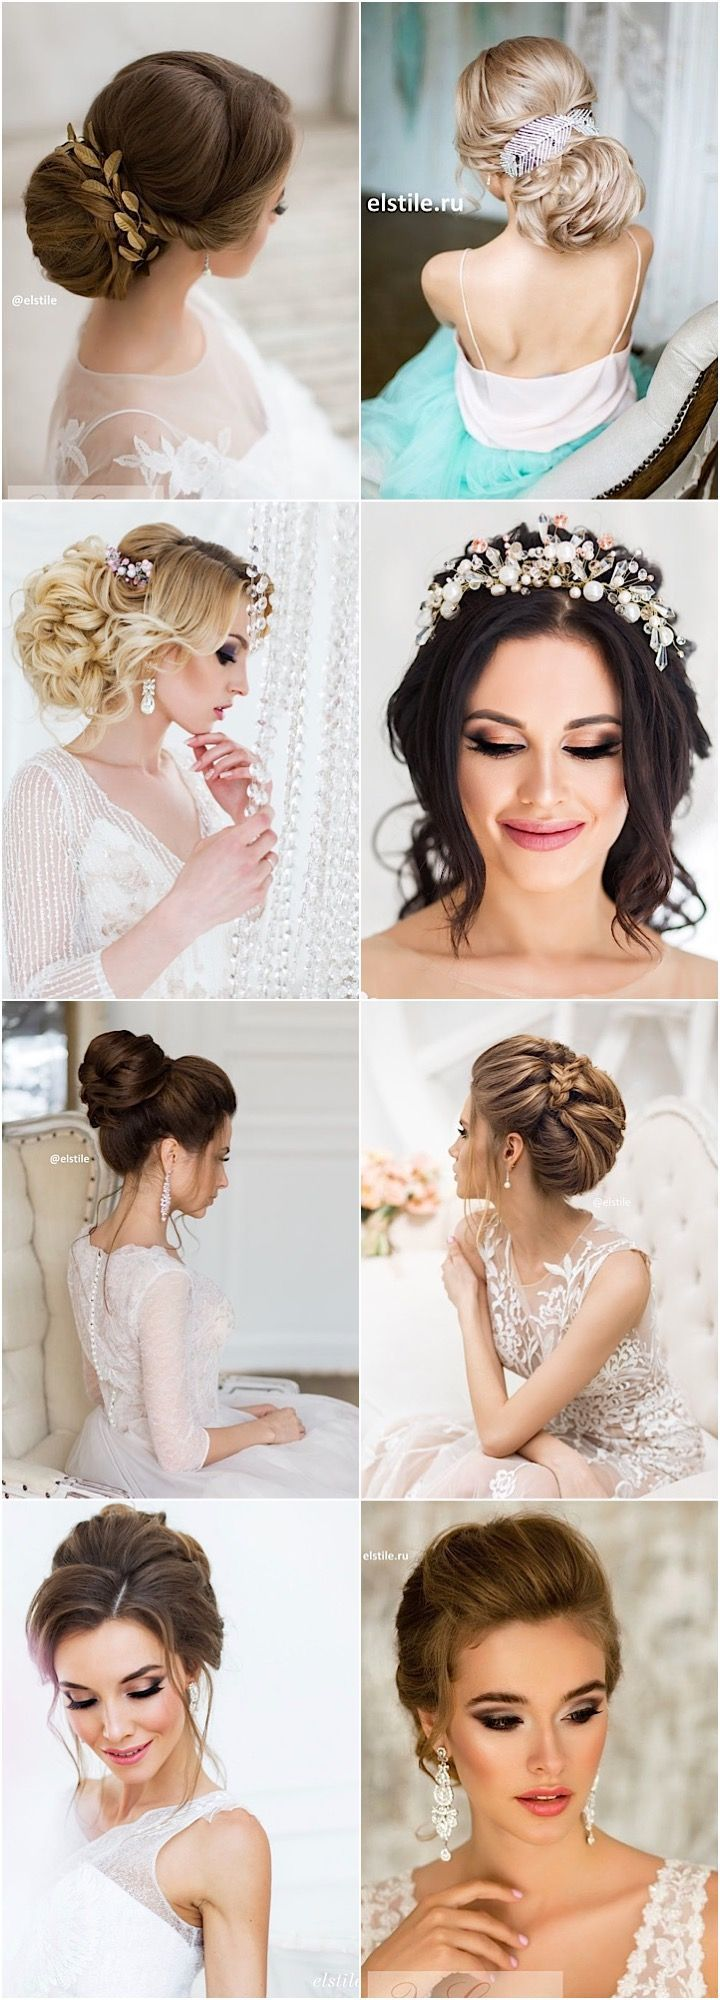 Wedding Hairstyle : Featured Updo Wedding Hairstyle: Elstile; www ...